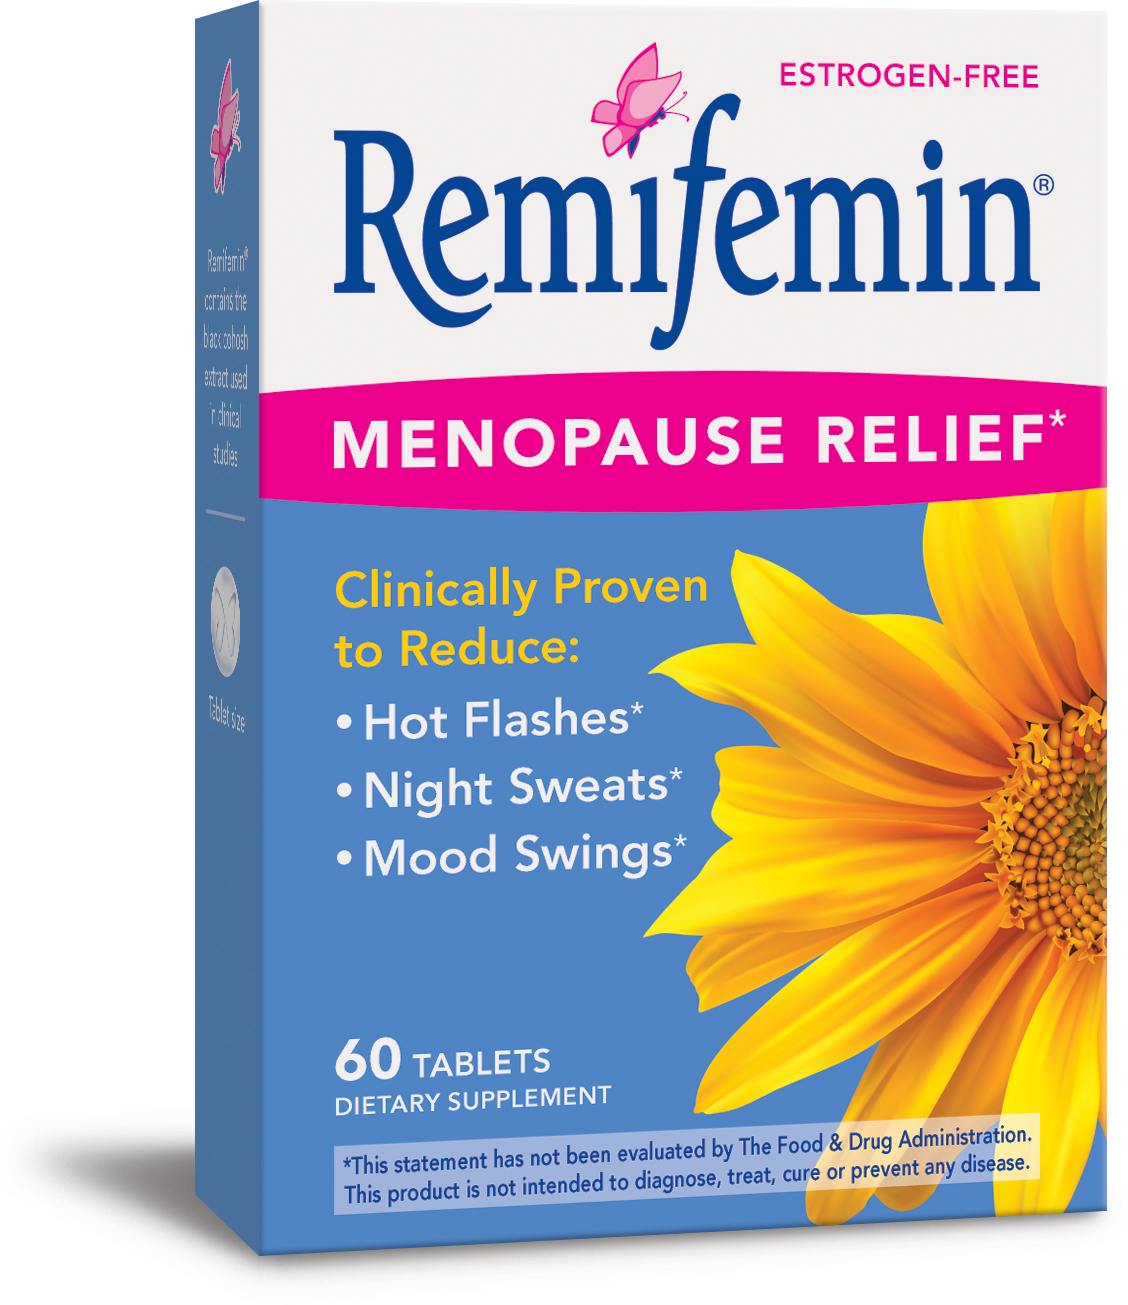 Remifemin Menopause Relief 60 tabs by Enzymatic Therapy